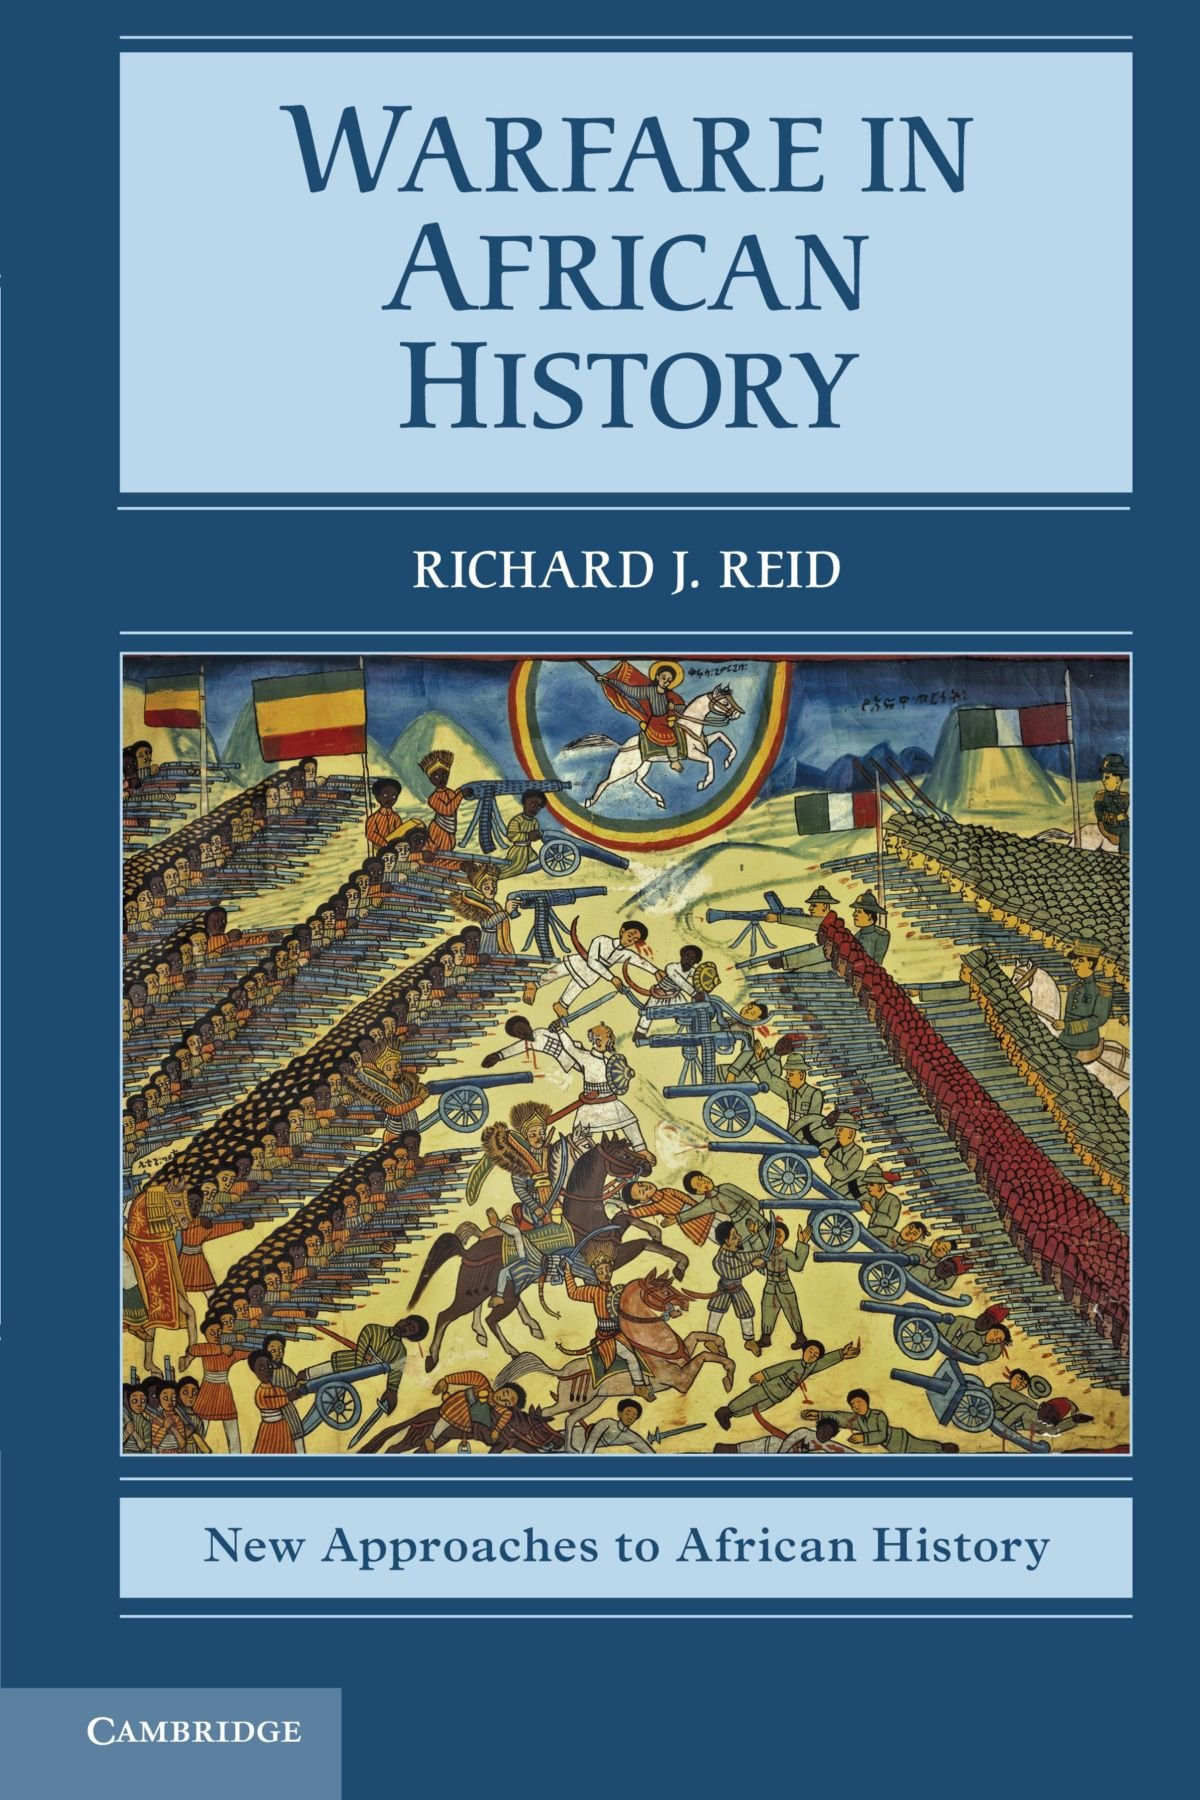 Download Warfare in African History (New Approaches to African History) pdf